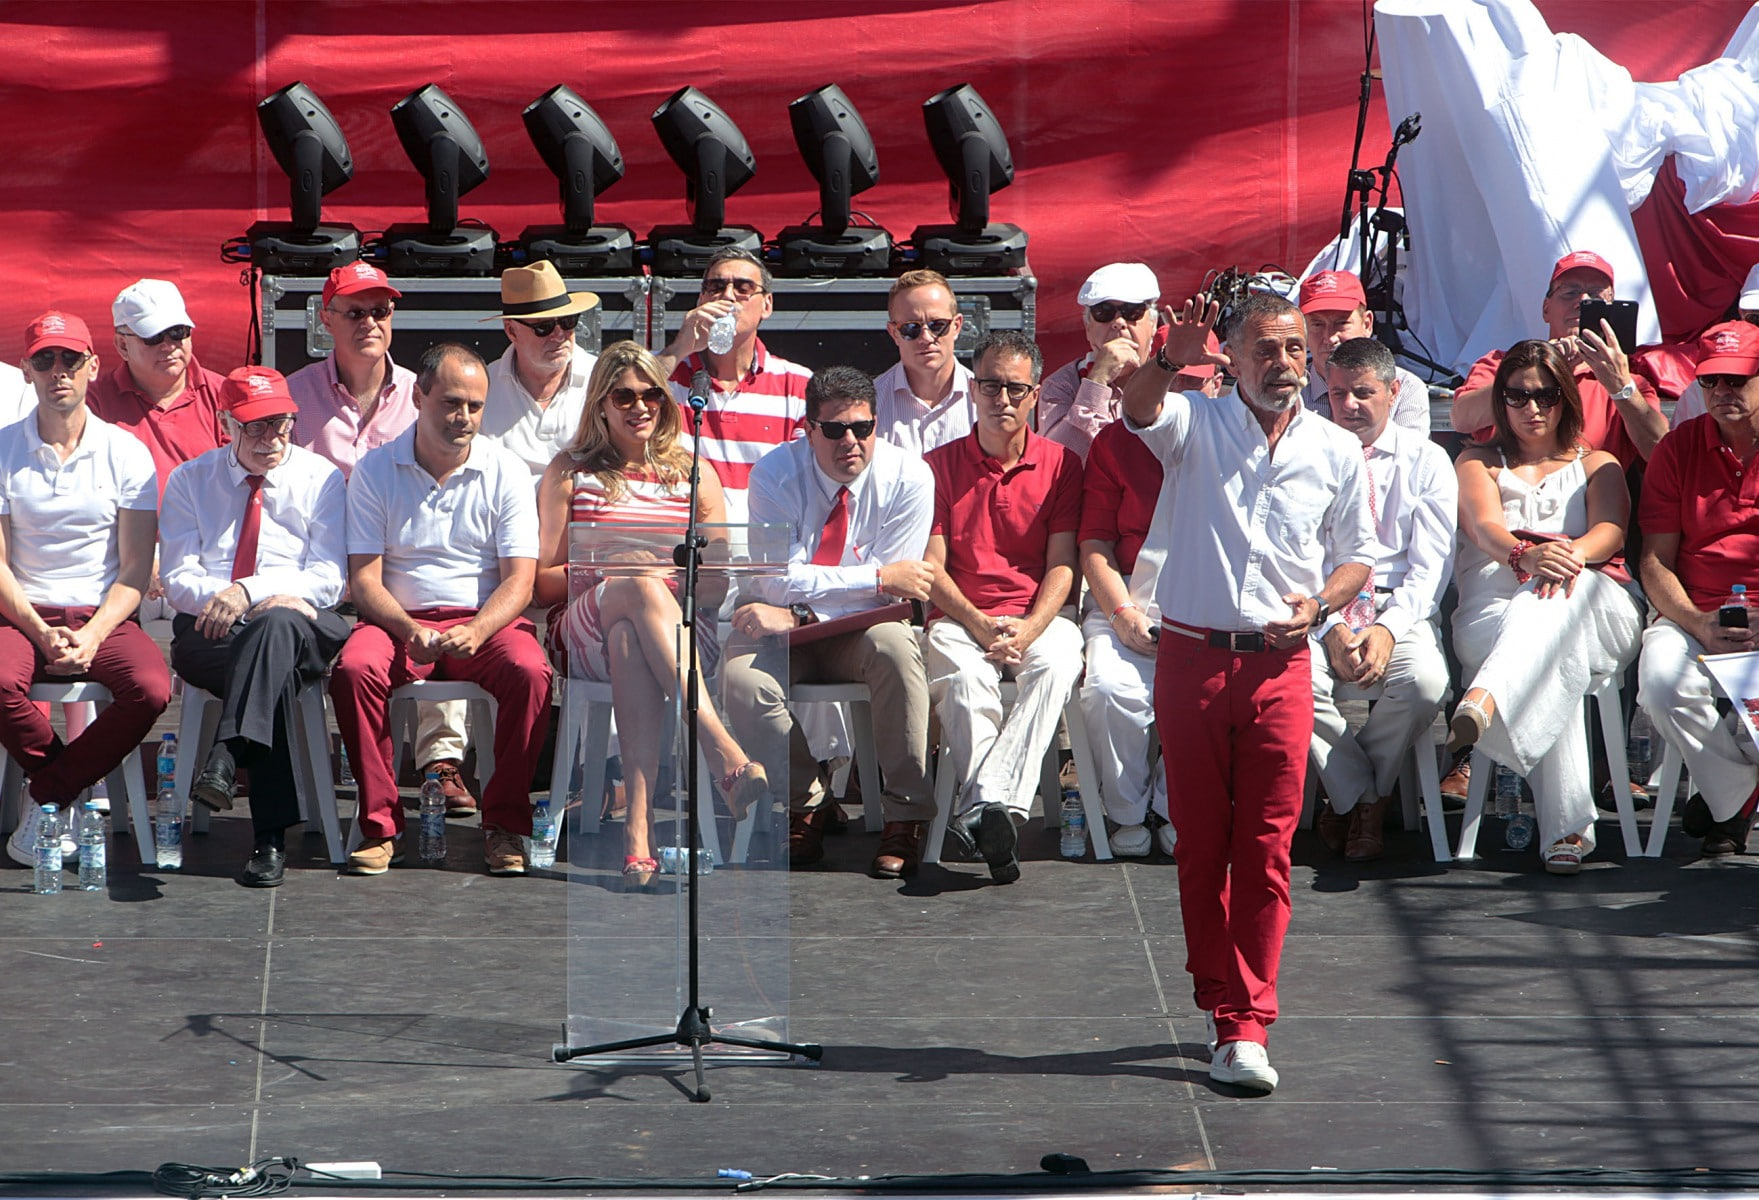 160910-national-day-gibraltar-2016-35_29495043352_o